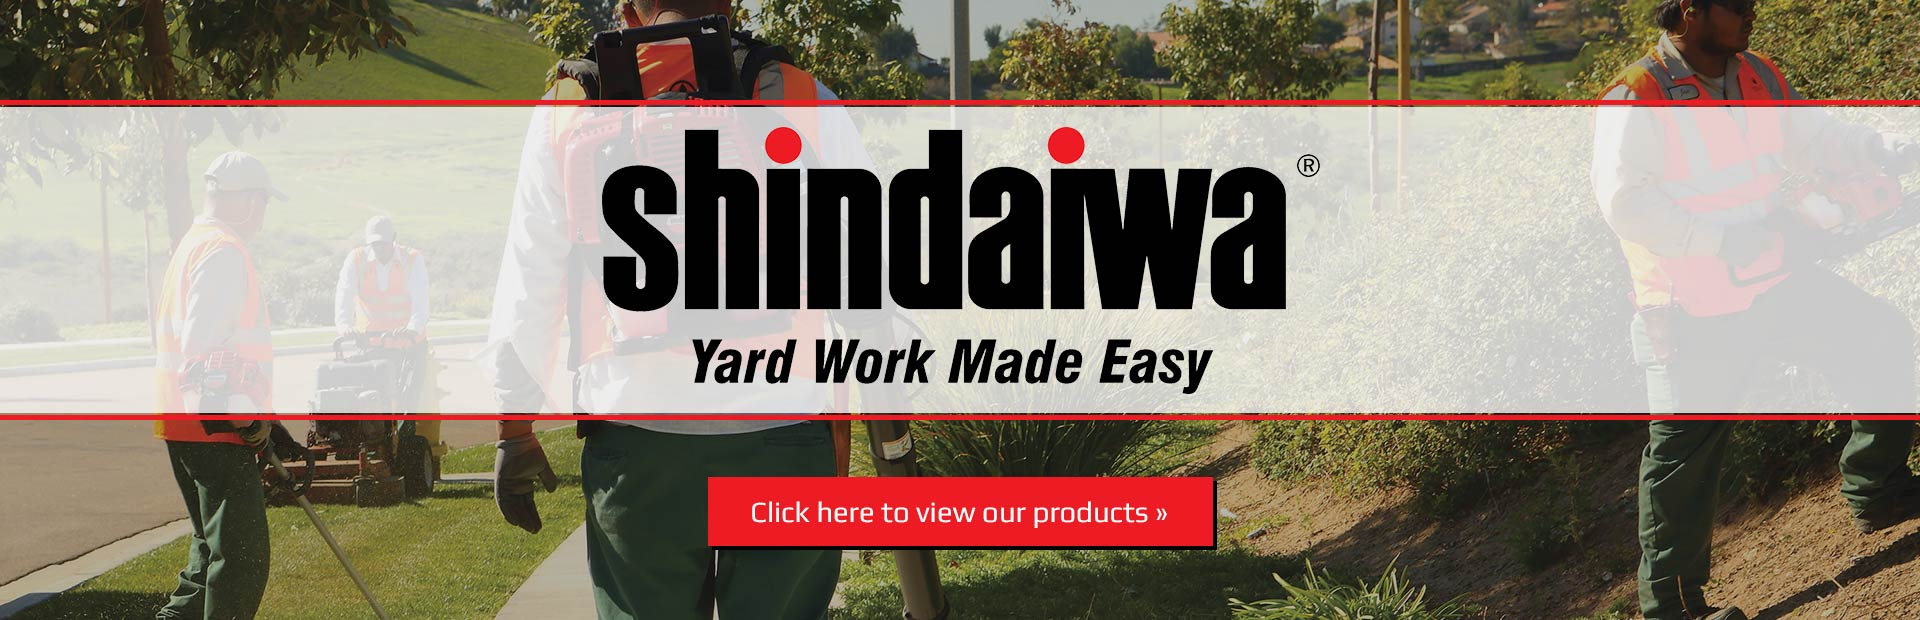 Click here to view our Shindaiwa products.